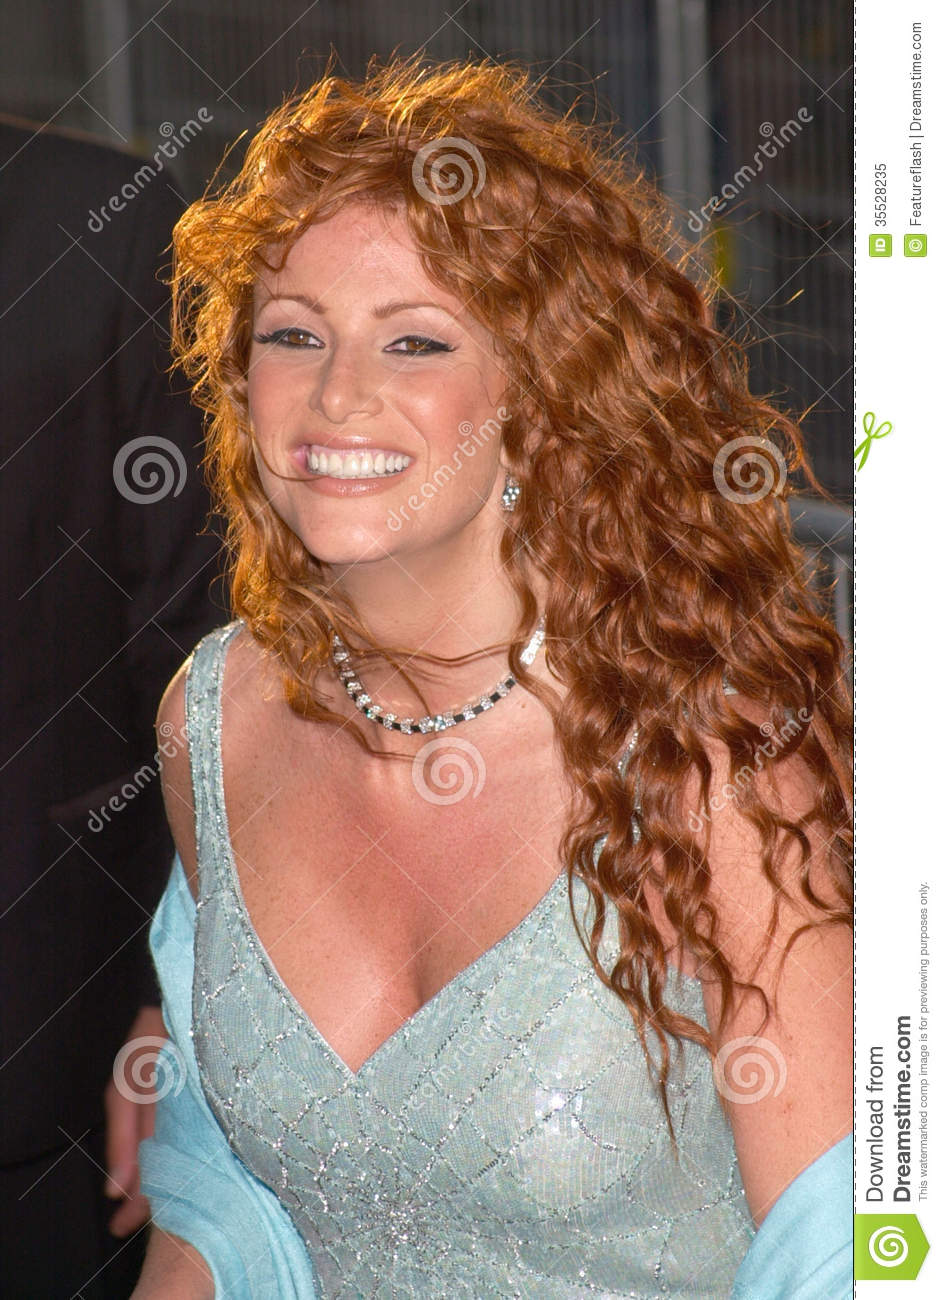 Angie Everhart Naked Pics pictures of young angie everhart - quality porn